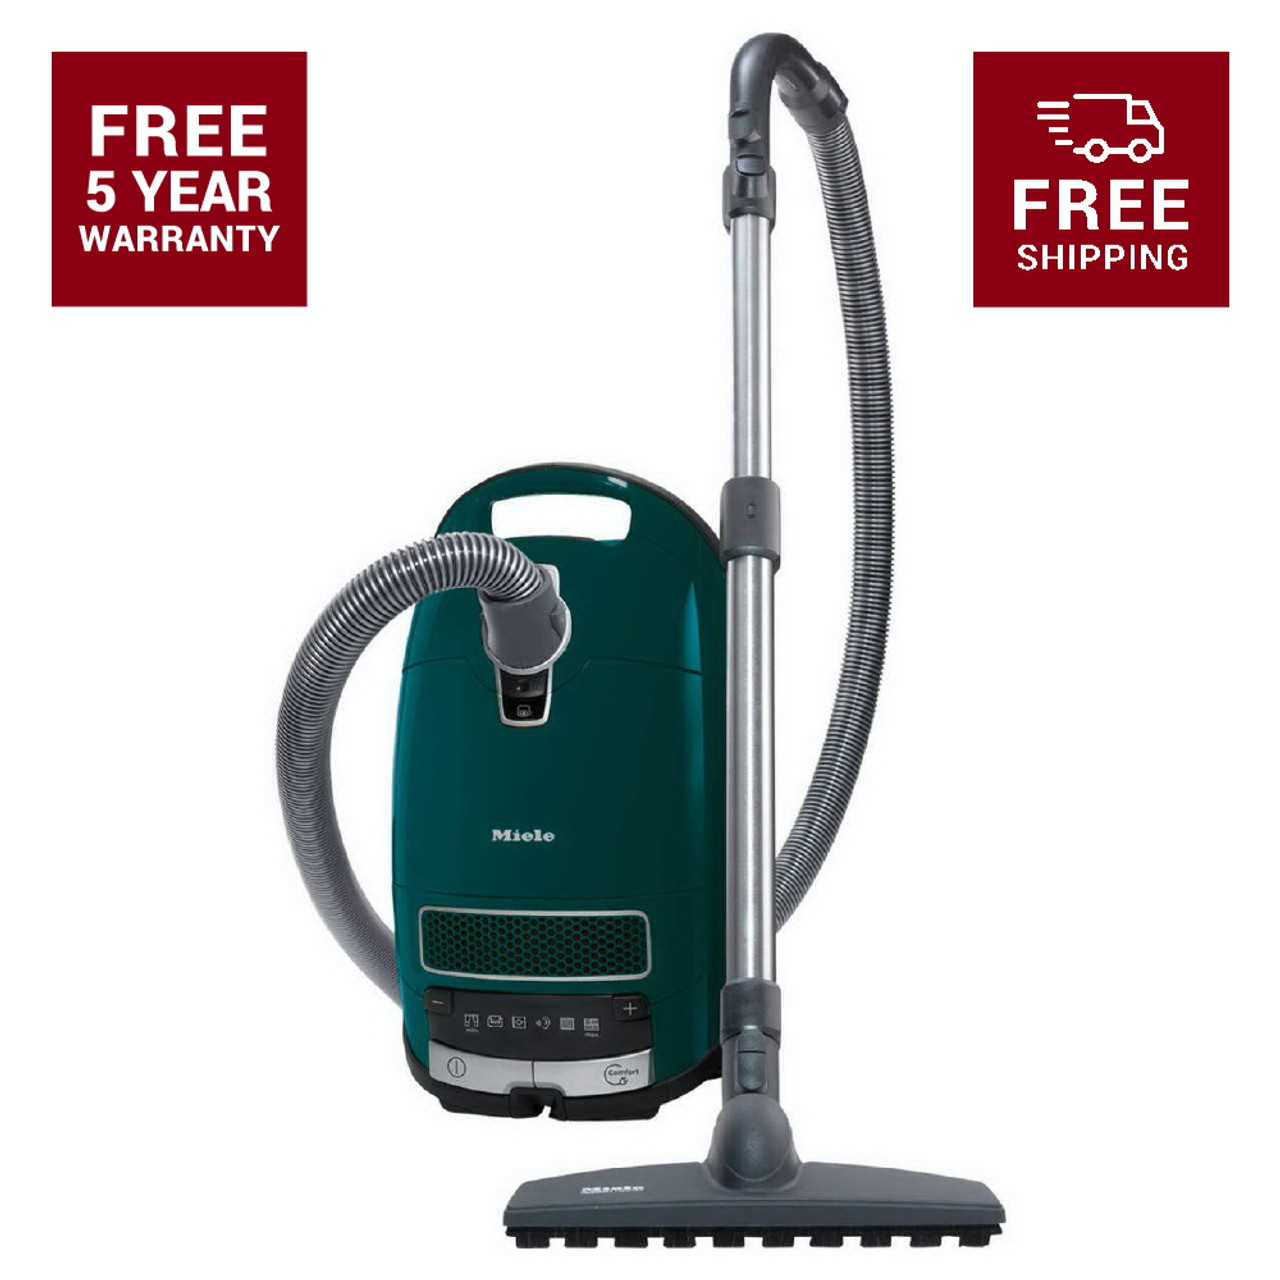 a363452a36 Miele Vacuum Cleaner Sale - C3 Limited Edition - Vacuum Warehouse.